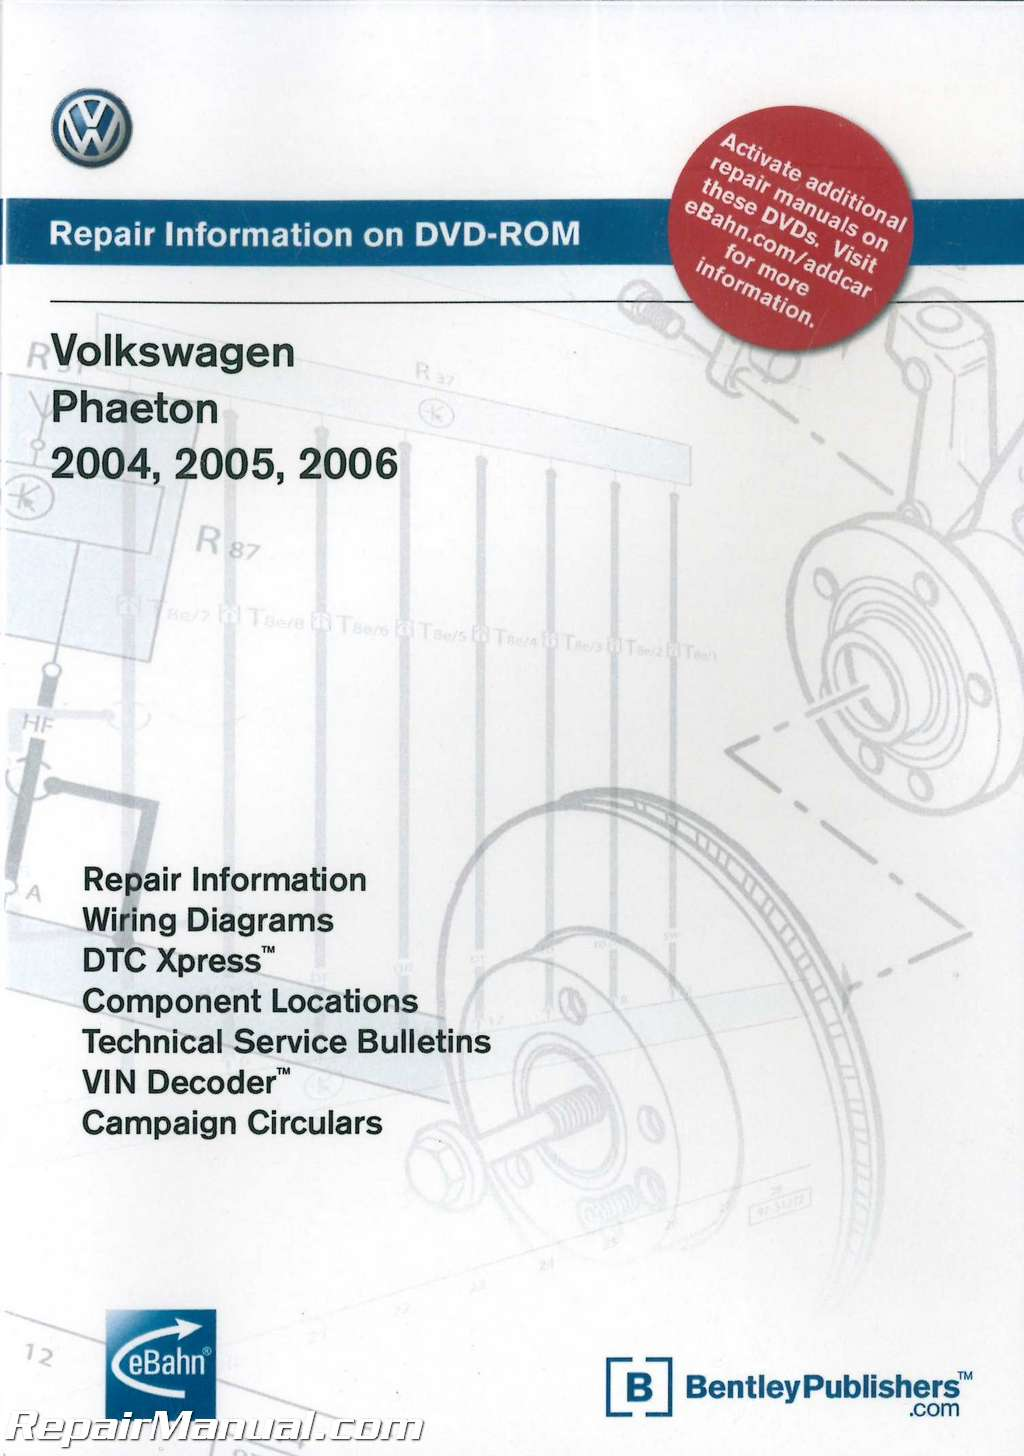 volkswagen phaeton 2004 2005 2006 repair manual on dvd rom rh repairmanual com Modified VW Cabrio 95 VW Cabrio MPG